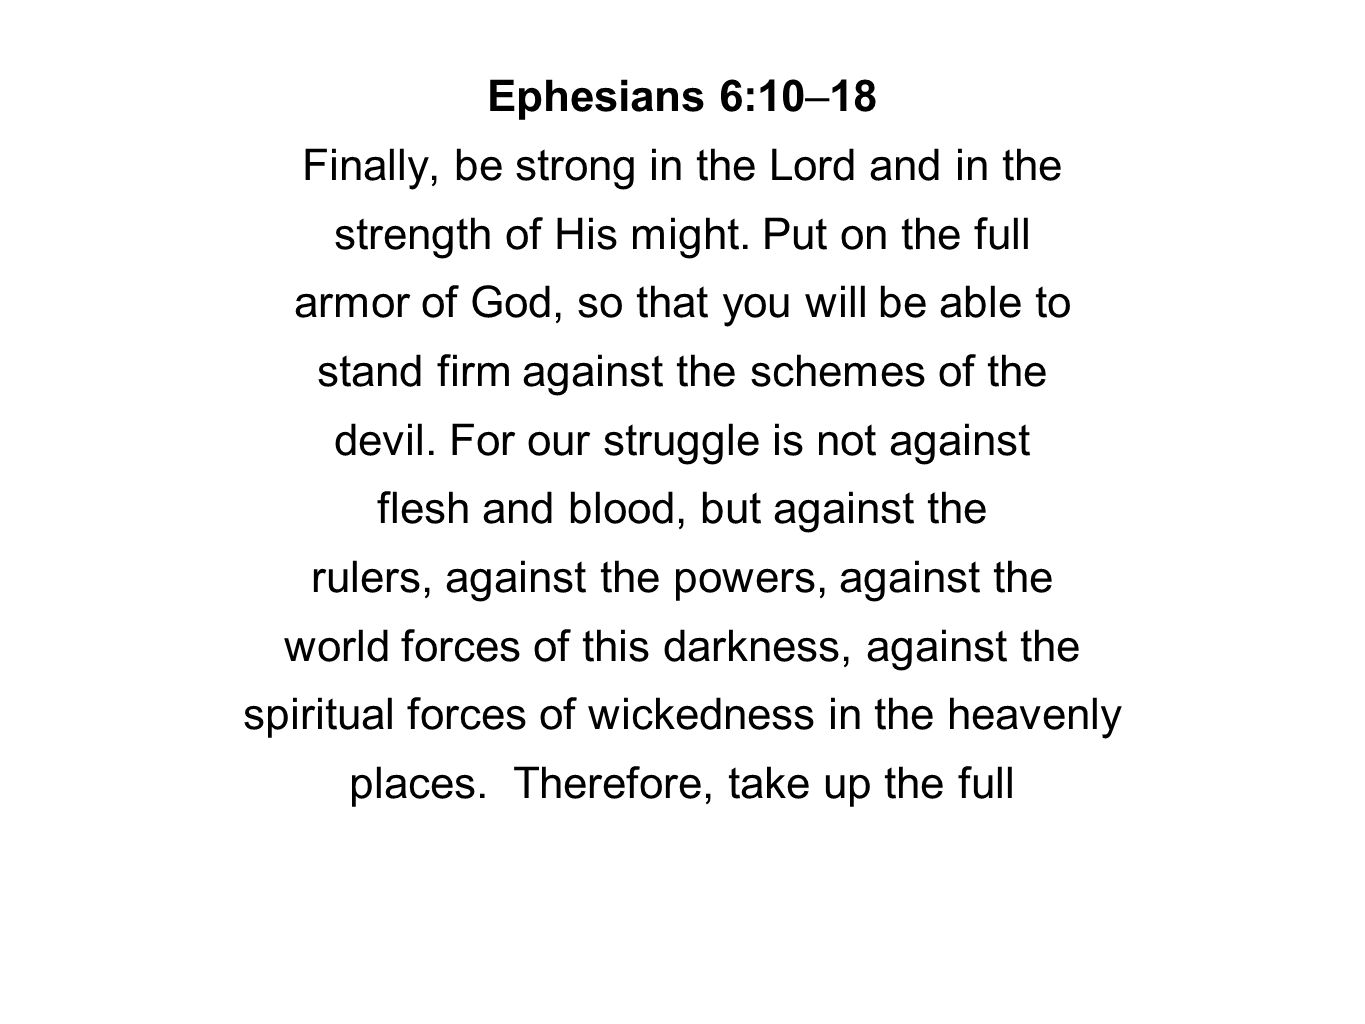 Ephesians 6:10–18 Finally, be strong in the Lord and in the strength of His might.